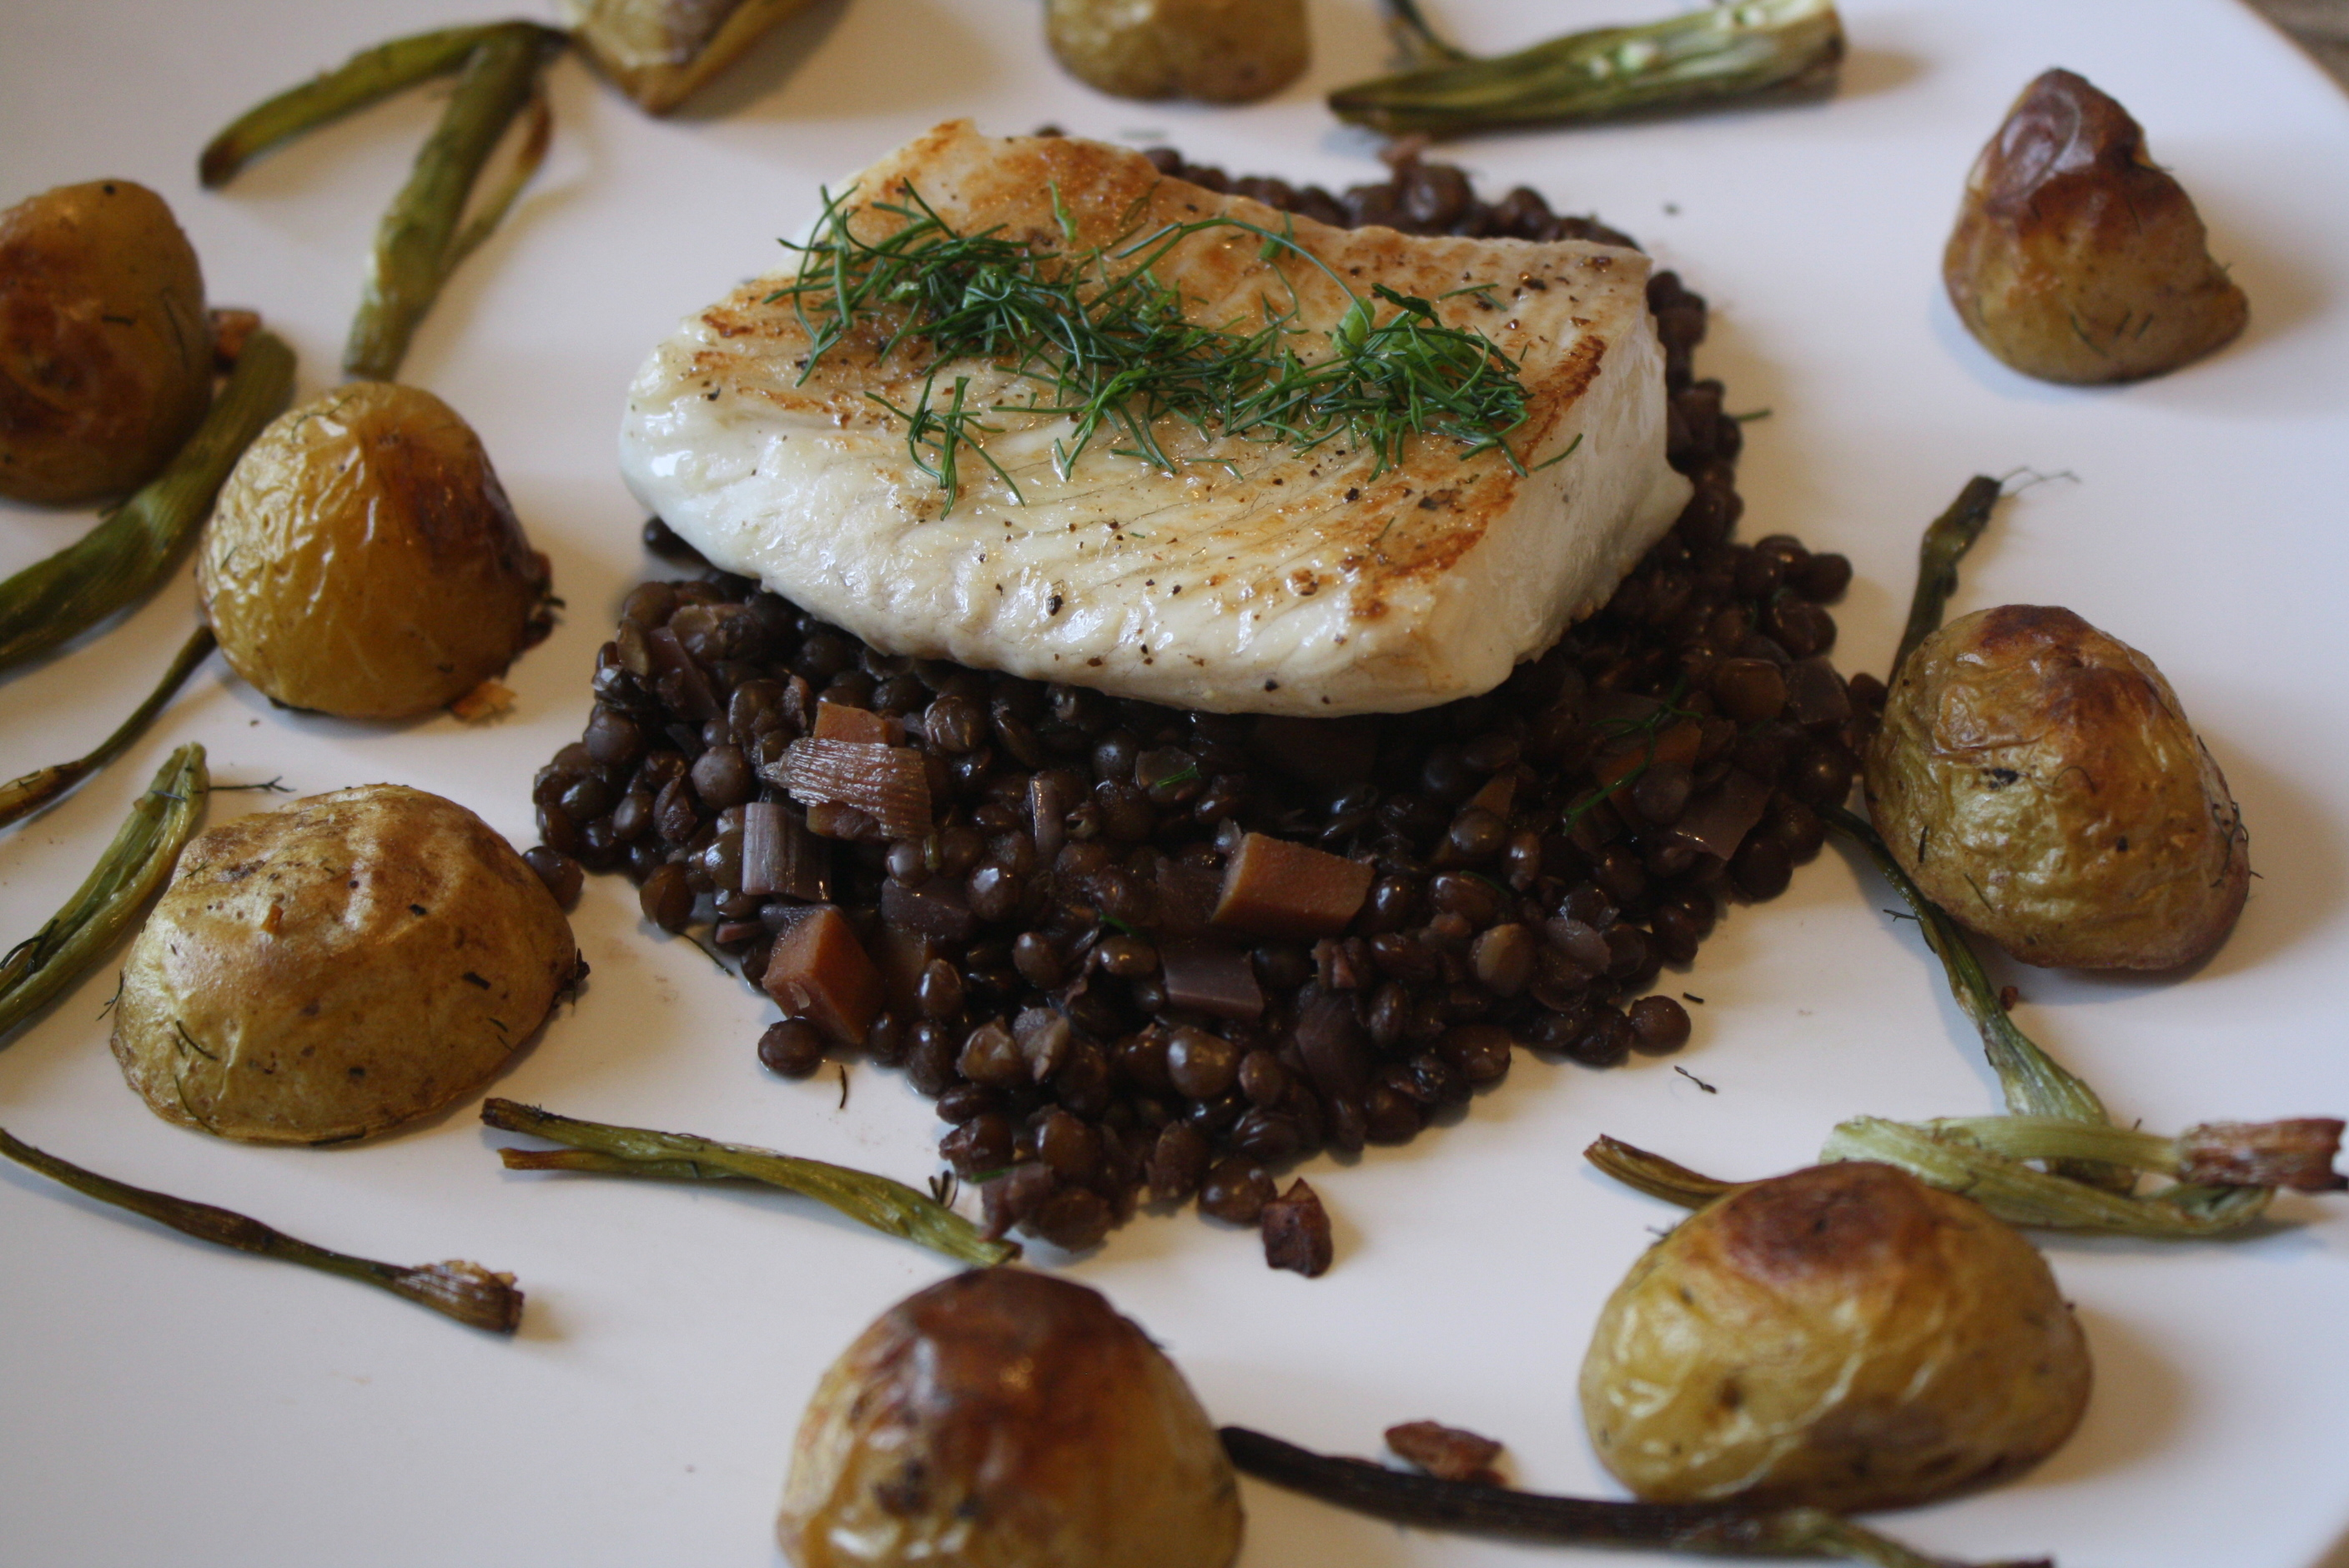 images Braised Lentils and Roast Pork Loin (The Perfect Winter Meal)